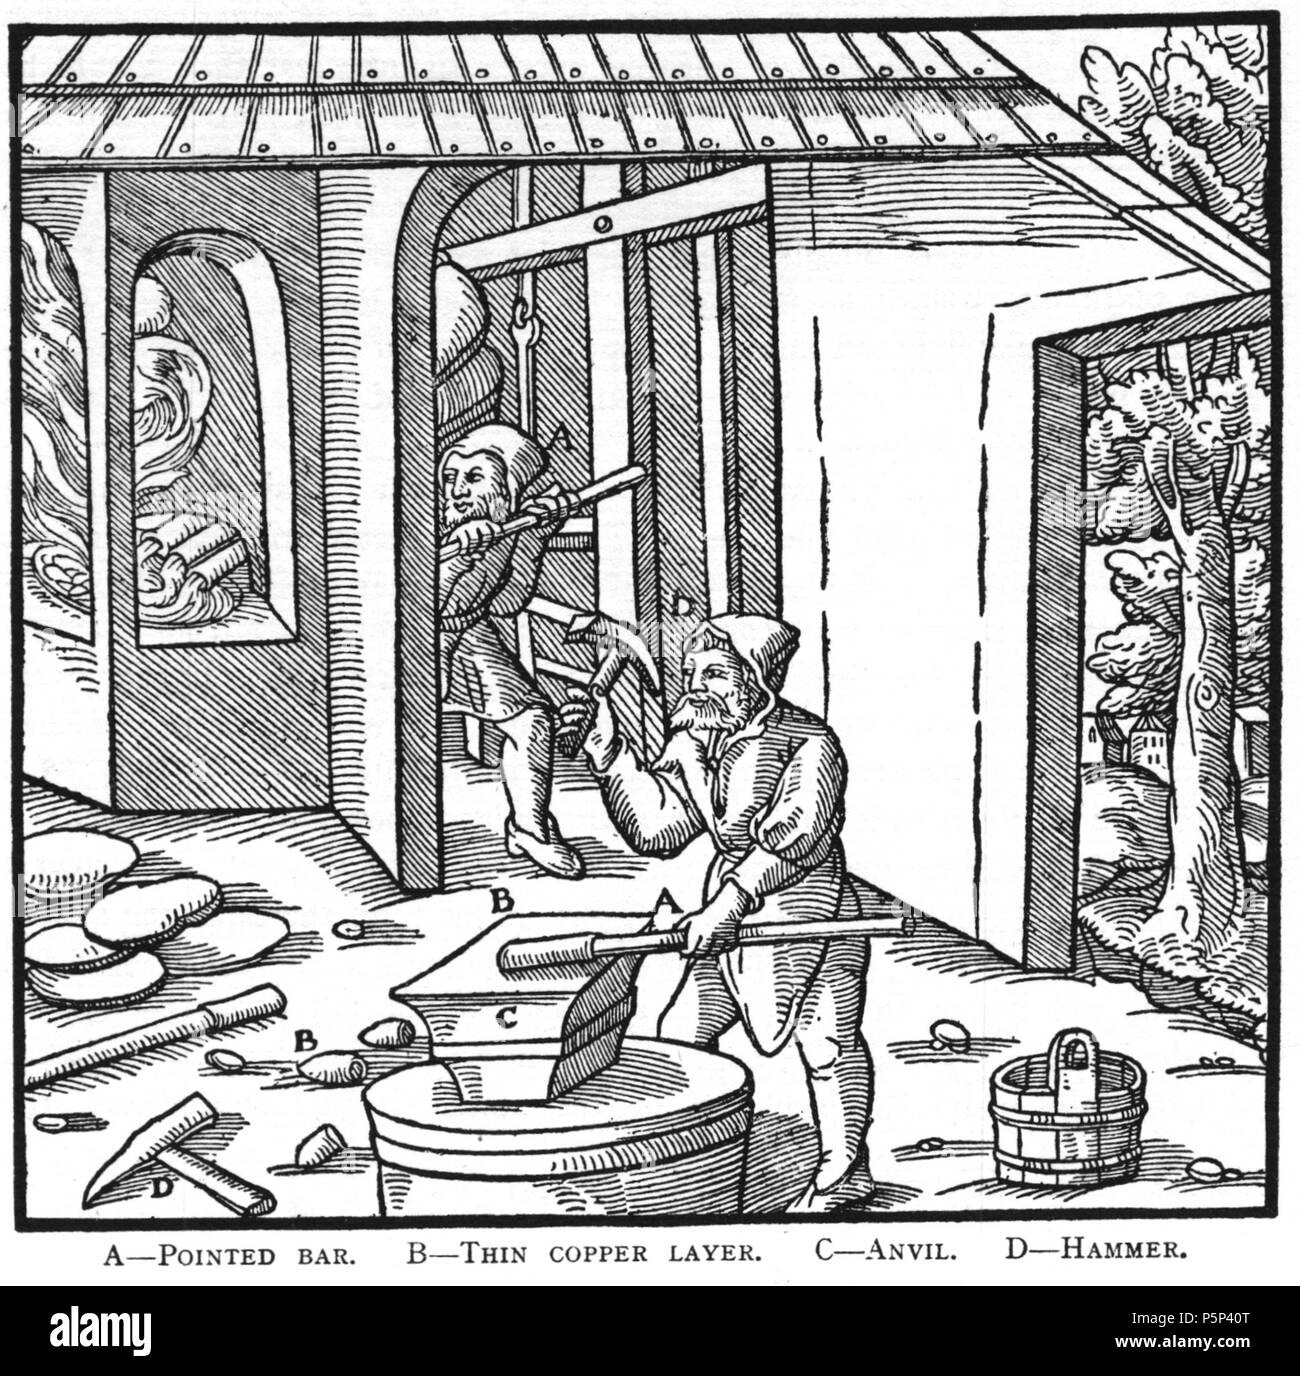 N/A. Woodcut illustration from De re metallica by Georgius Agricola. This is a 300dpi scan from the 1950 Dover edition of the 1913 Hoover translation of the 1556 reference. The Dover edition has slightly smaller size prints than the Hoover (which is a rare book). The woodcuts were recreated for the 1913 printing. Filenames (except for the title page) indicate the chapter (2, 3, 5, etc.) followed by the sequential number of the illustration. 2 May 2005, 06:55:50. TCO (talk) 222 Book11-16 - Stock Image